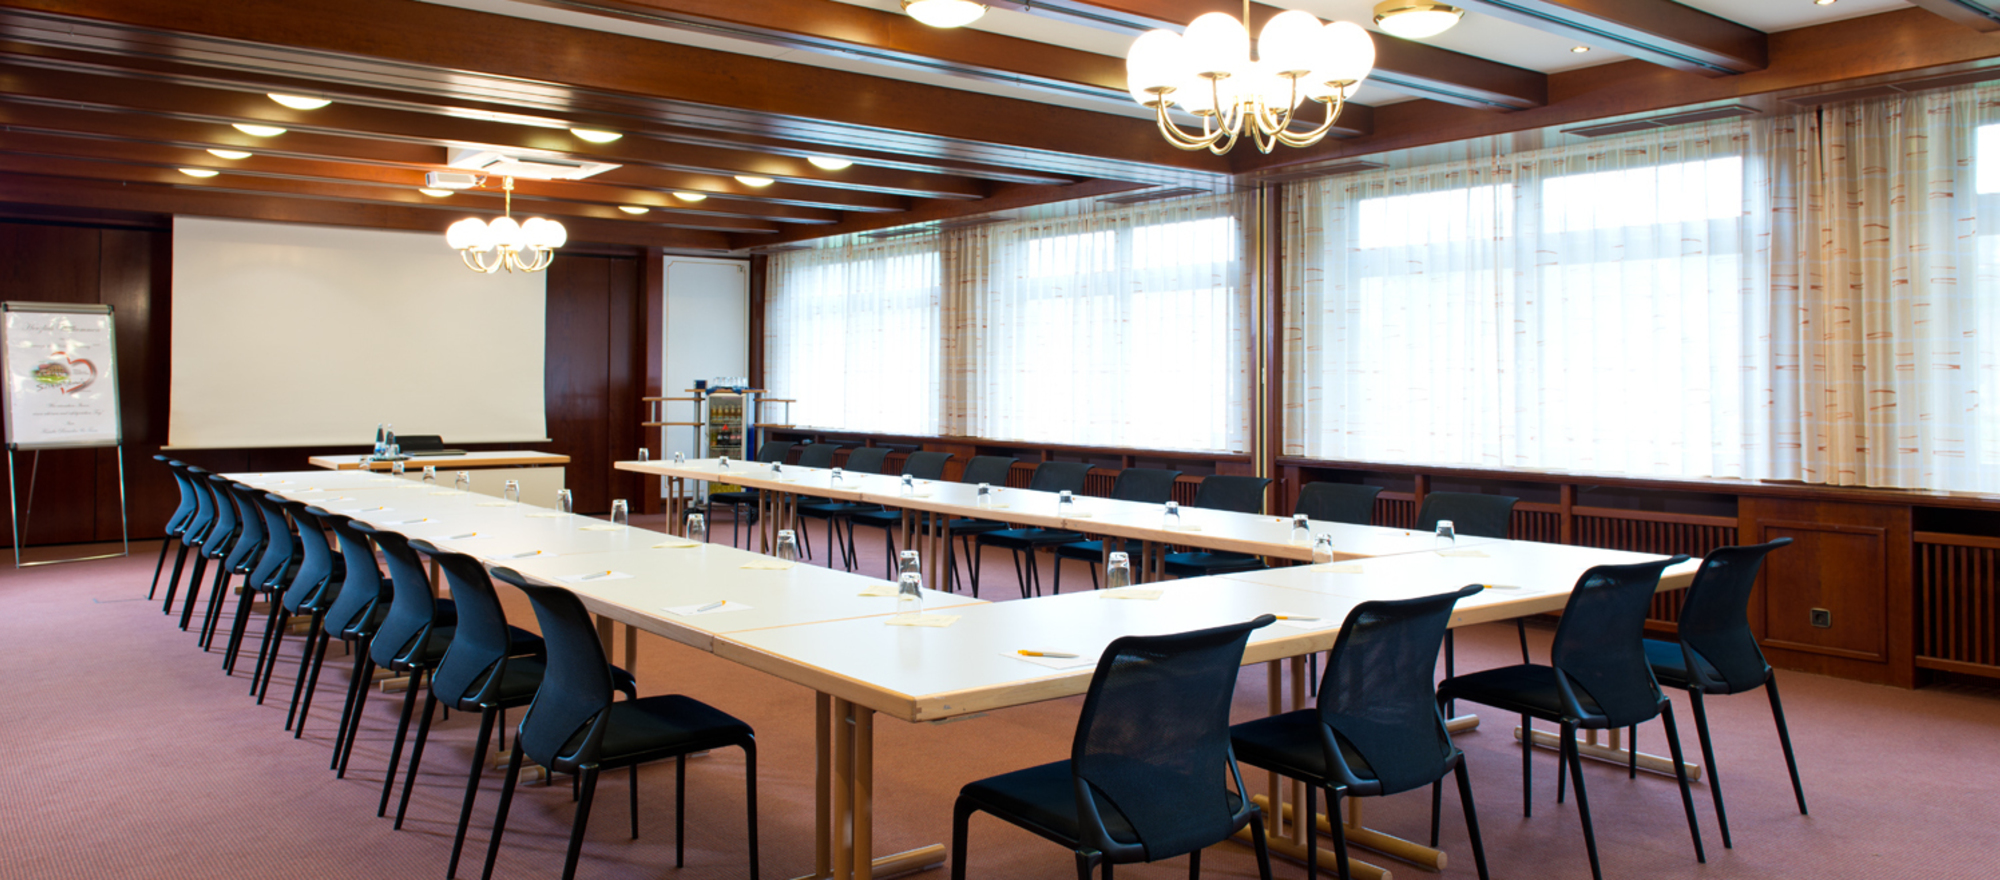 Function rooms up to 160 persons at the 4-star Ringhotel Schwarzwald-Hotel Silberkoenig in Gutach-Bleibach